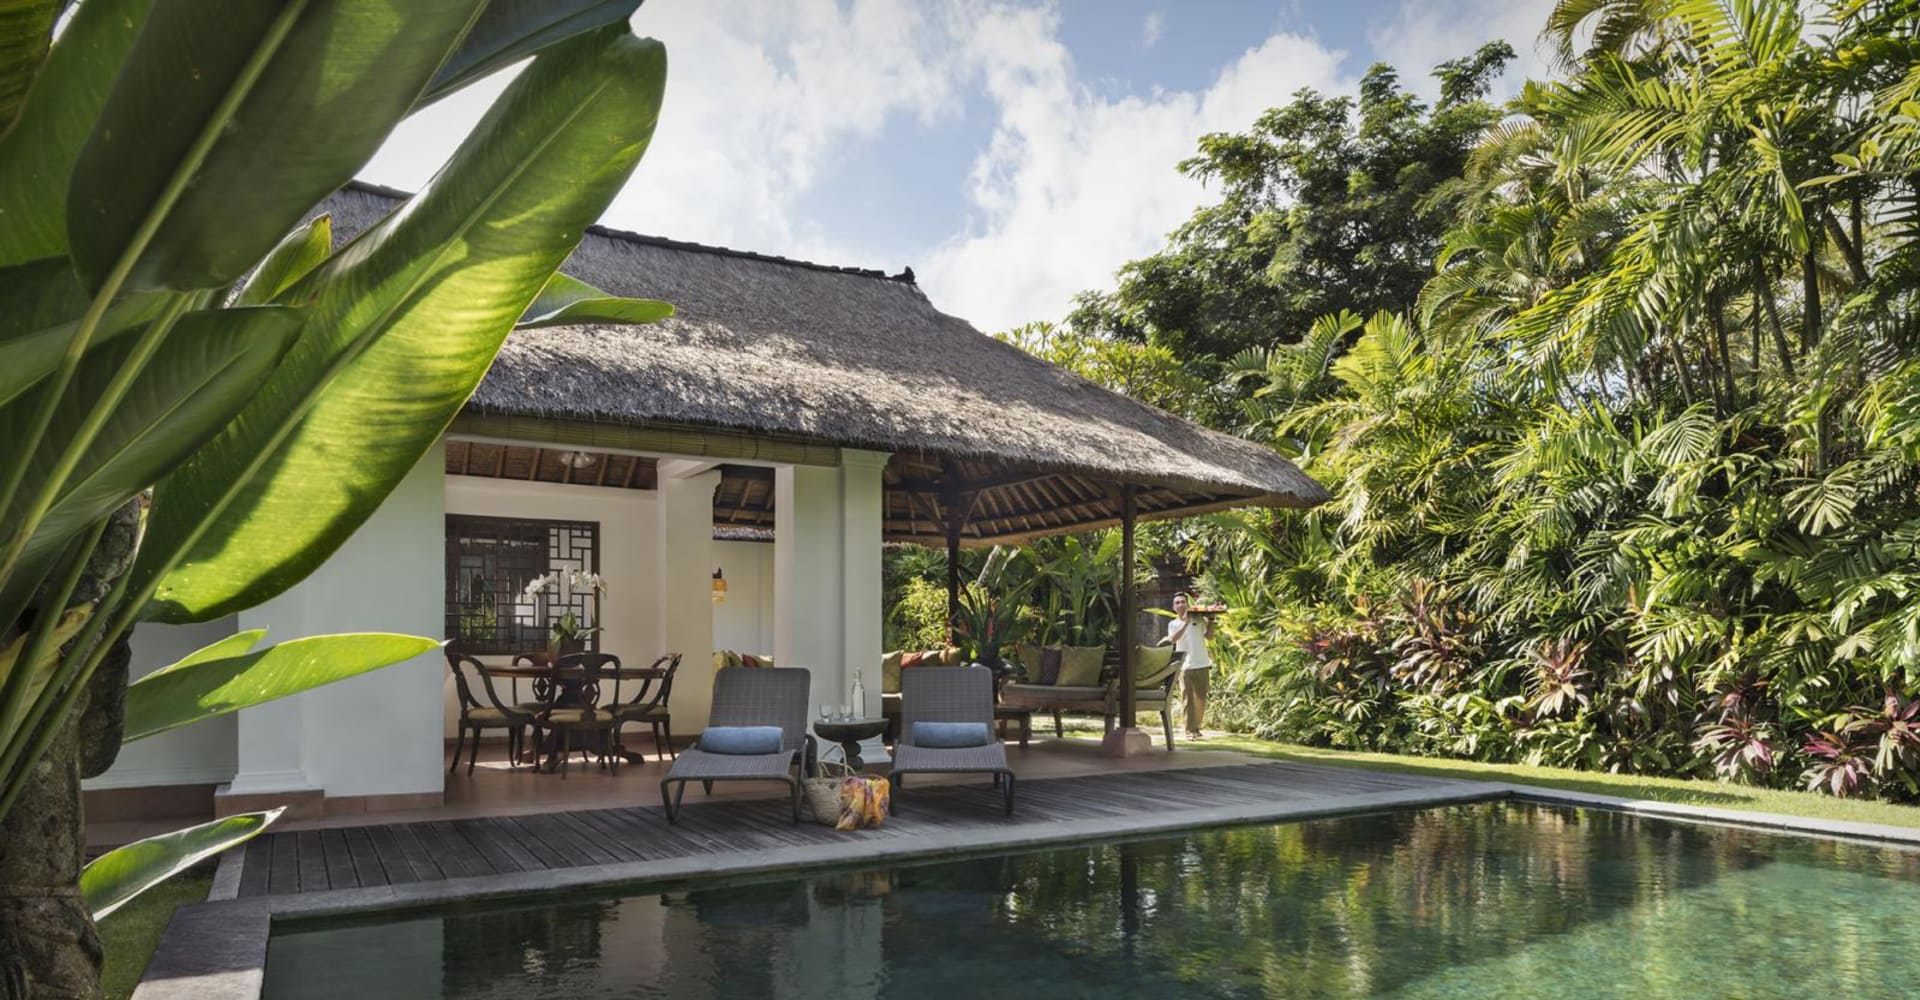 Just the Two of Us - The Pavilions Bali